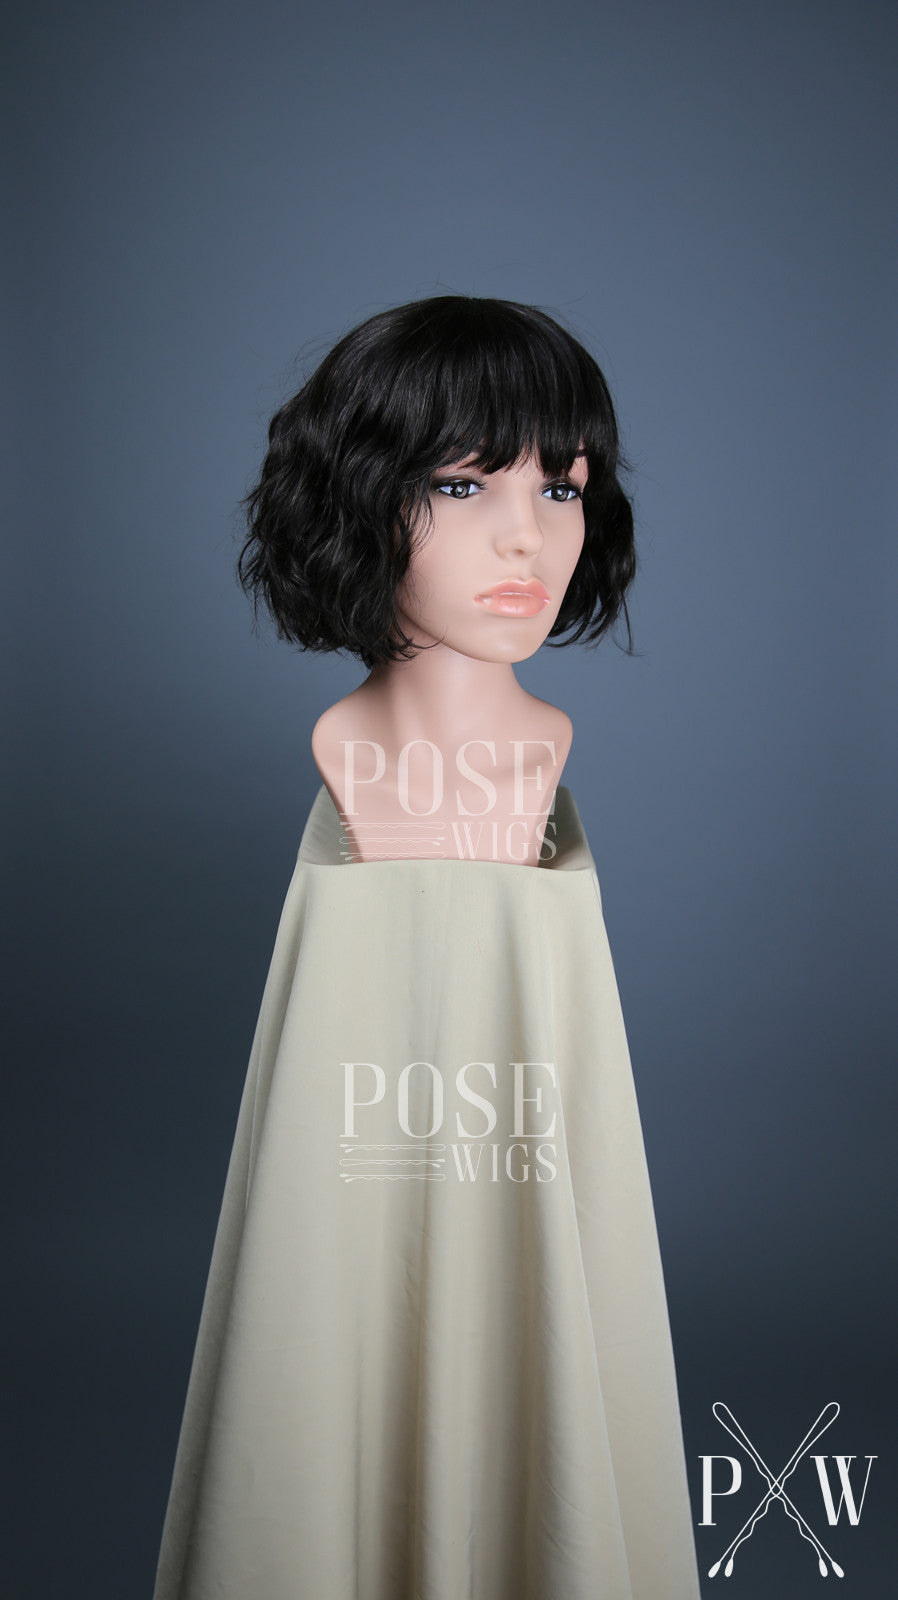 Natural Black   Darkest Brown Short Wavy Bob with Bangs 100% Human Hair  Fashion Wig 56d538aaf811